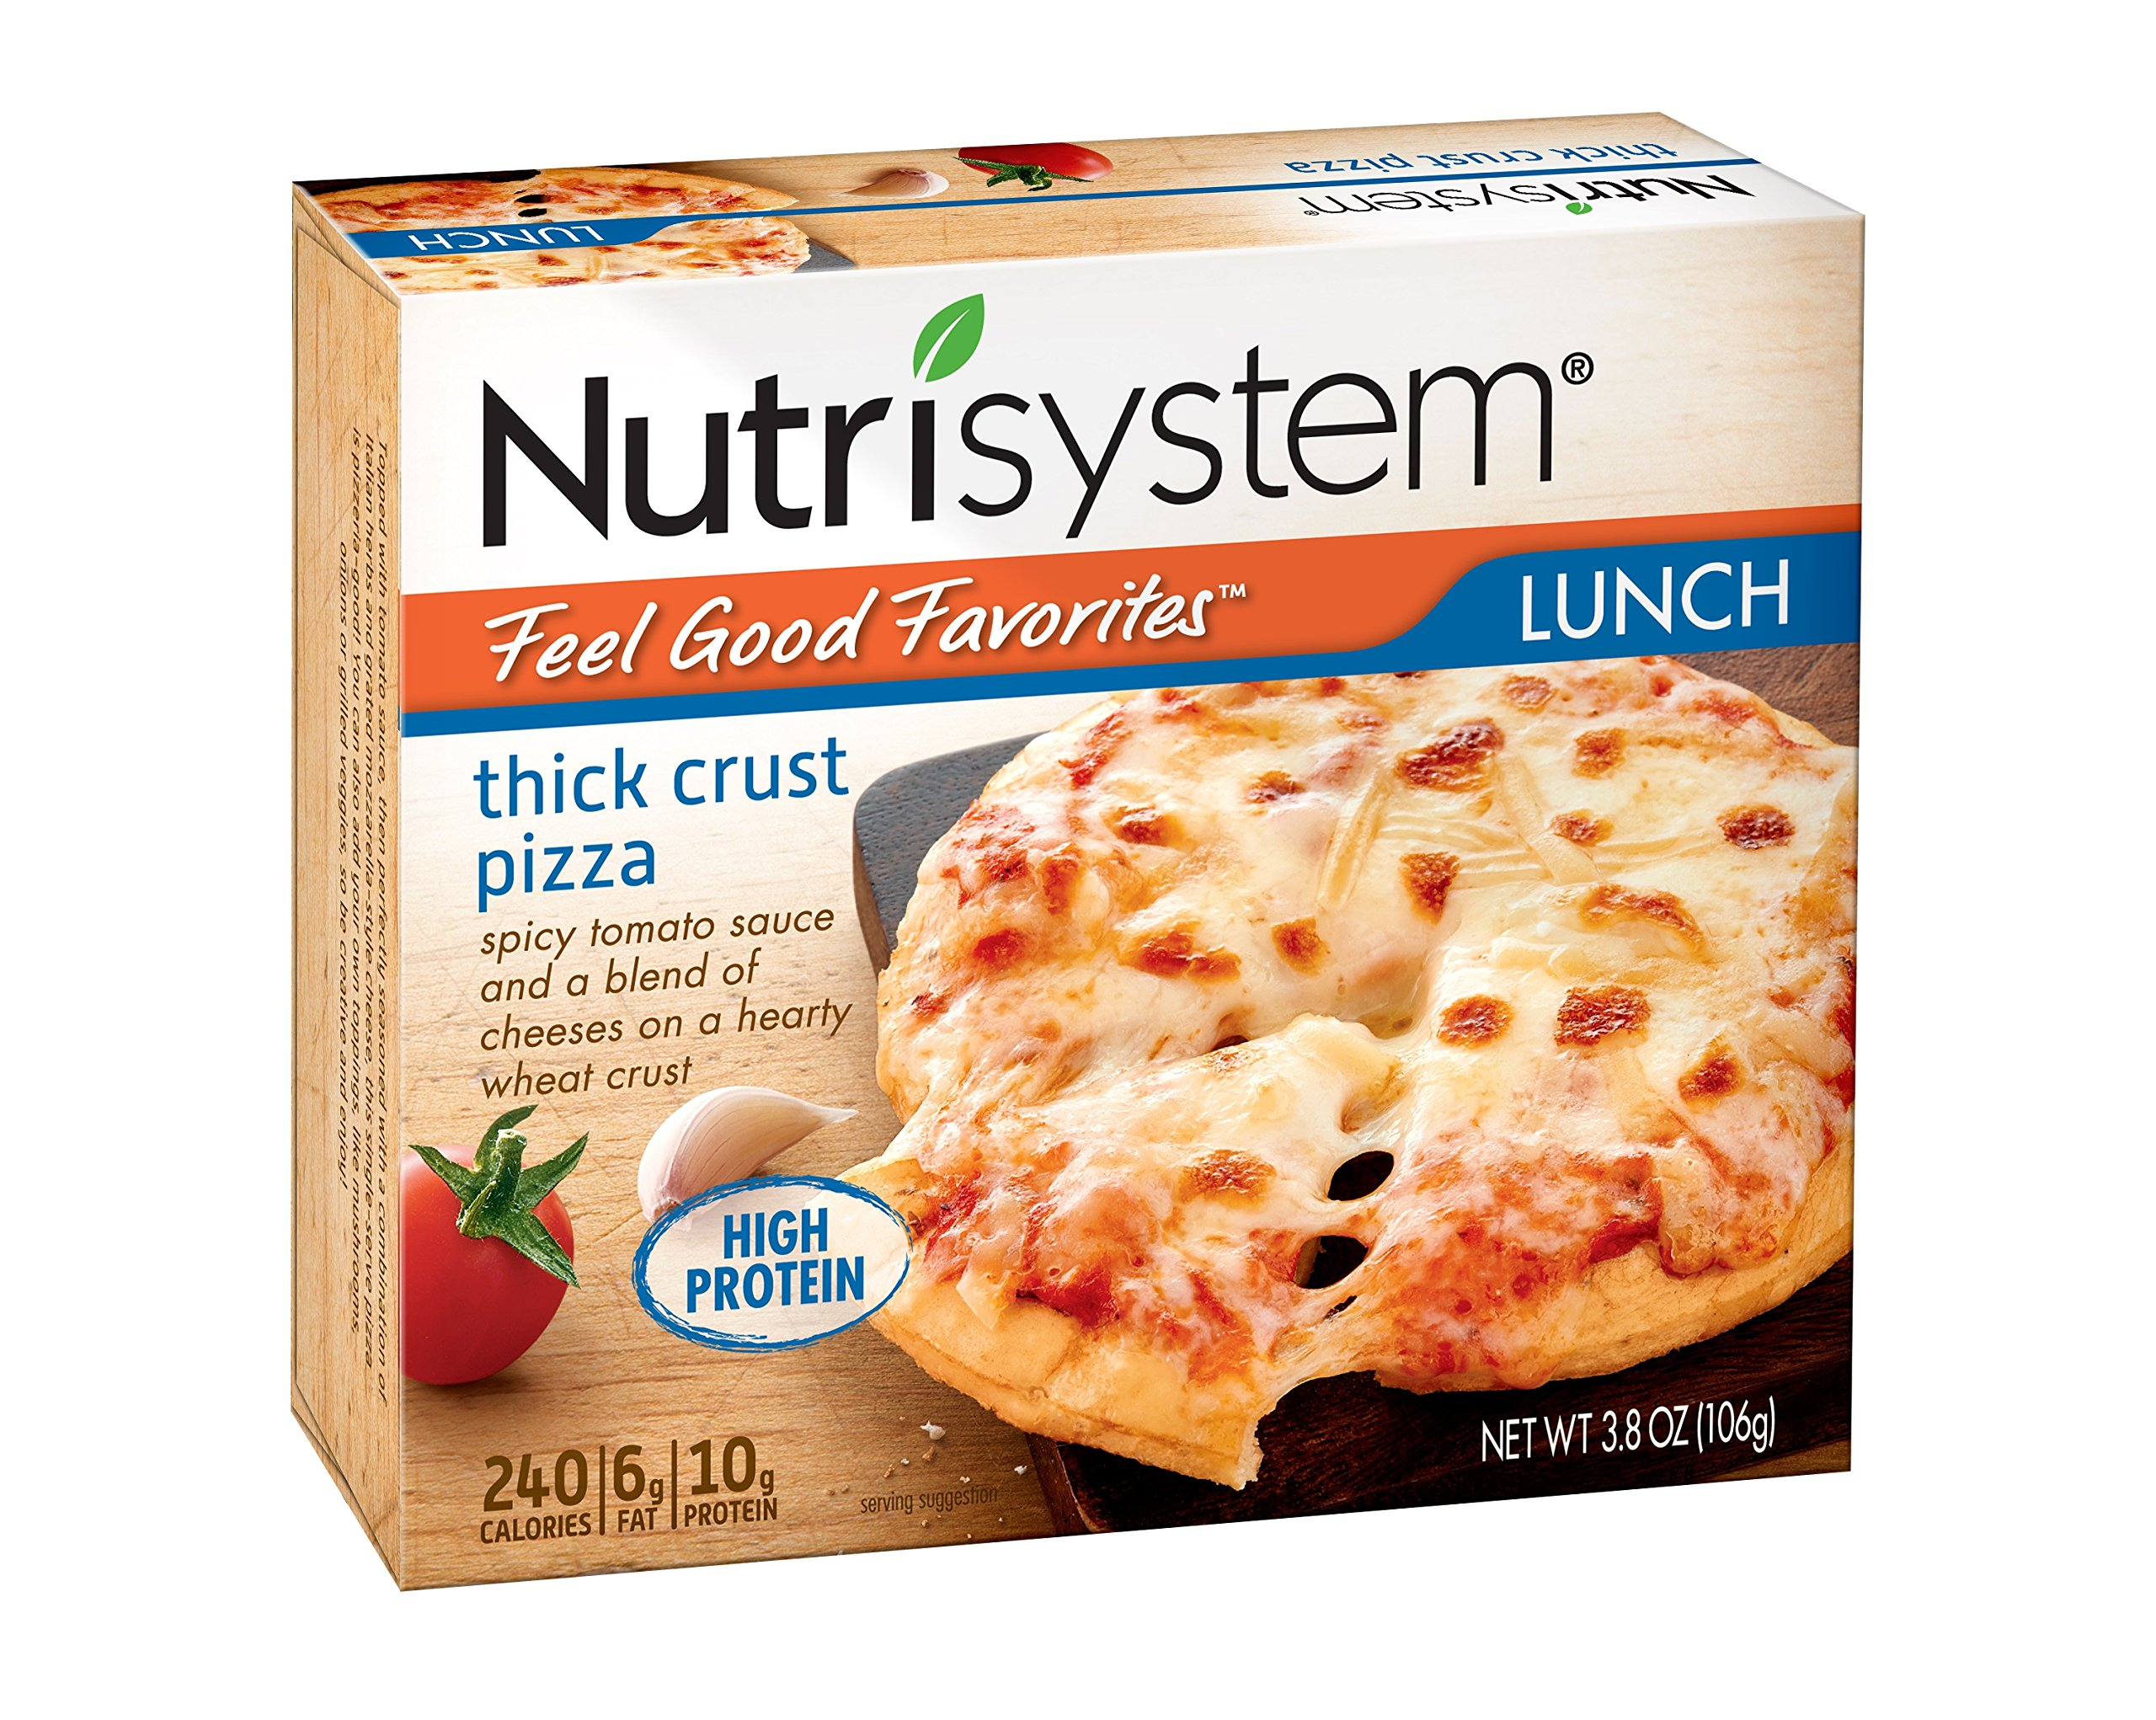 Nutrisystem® Feel Good Favorites® Thick Crust Pizza, 6 ct by Nutrisystem